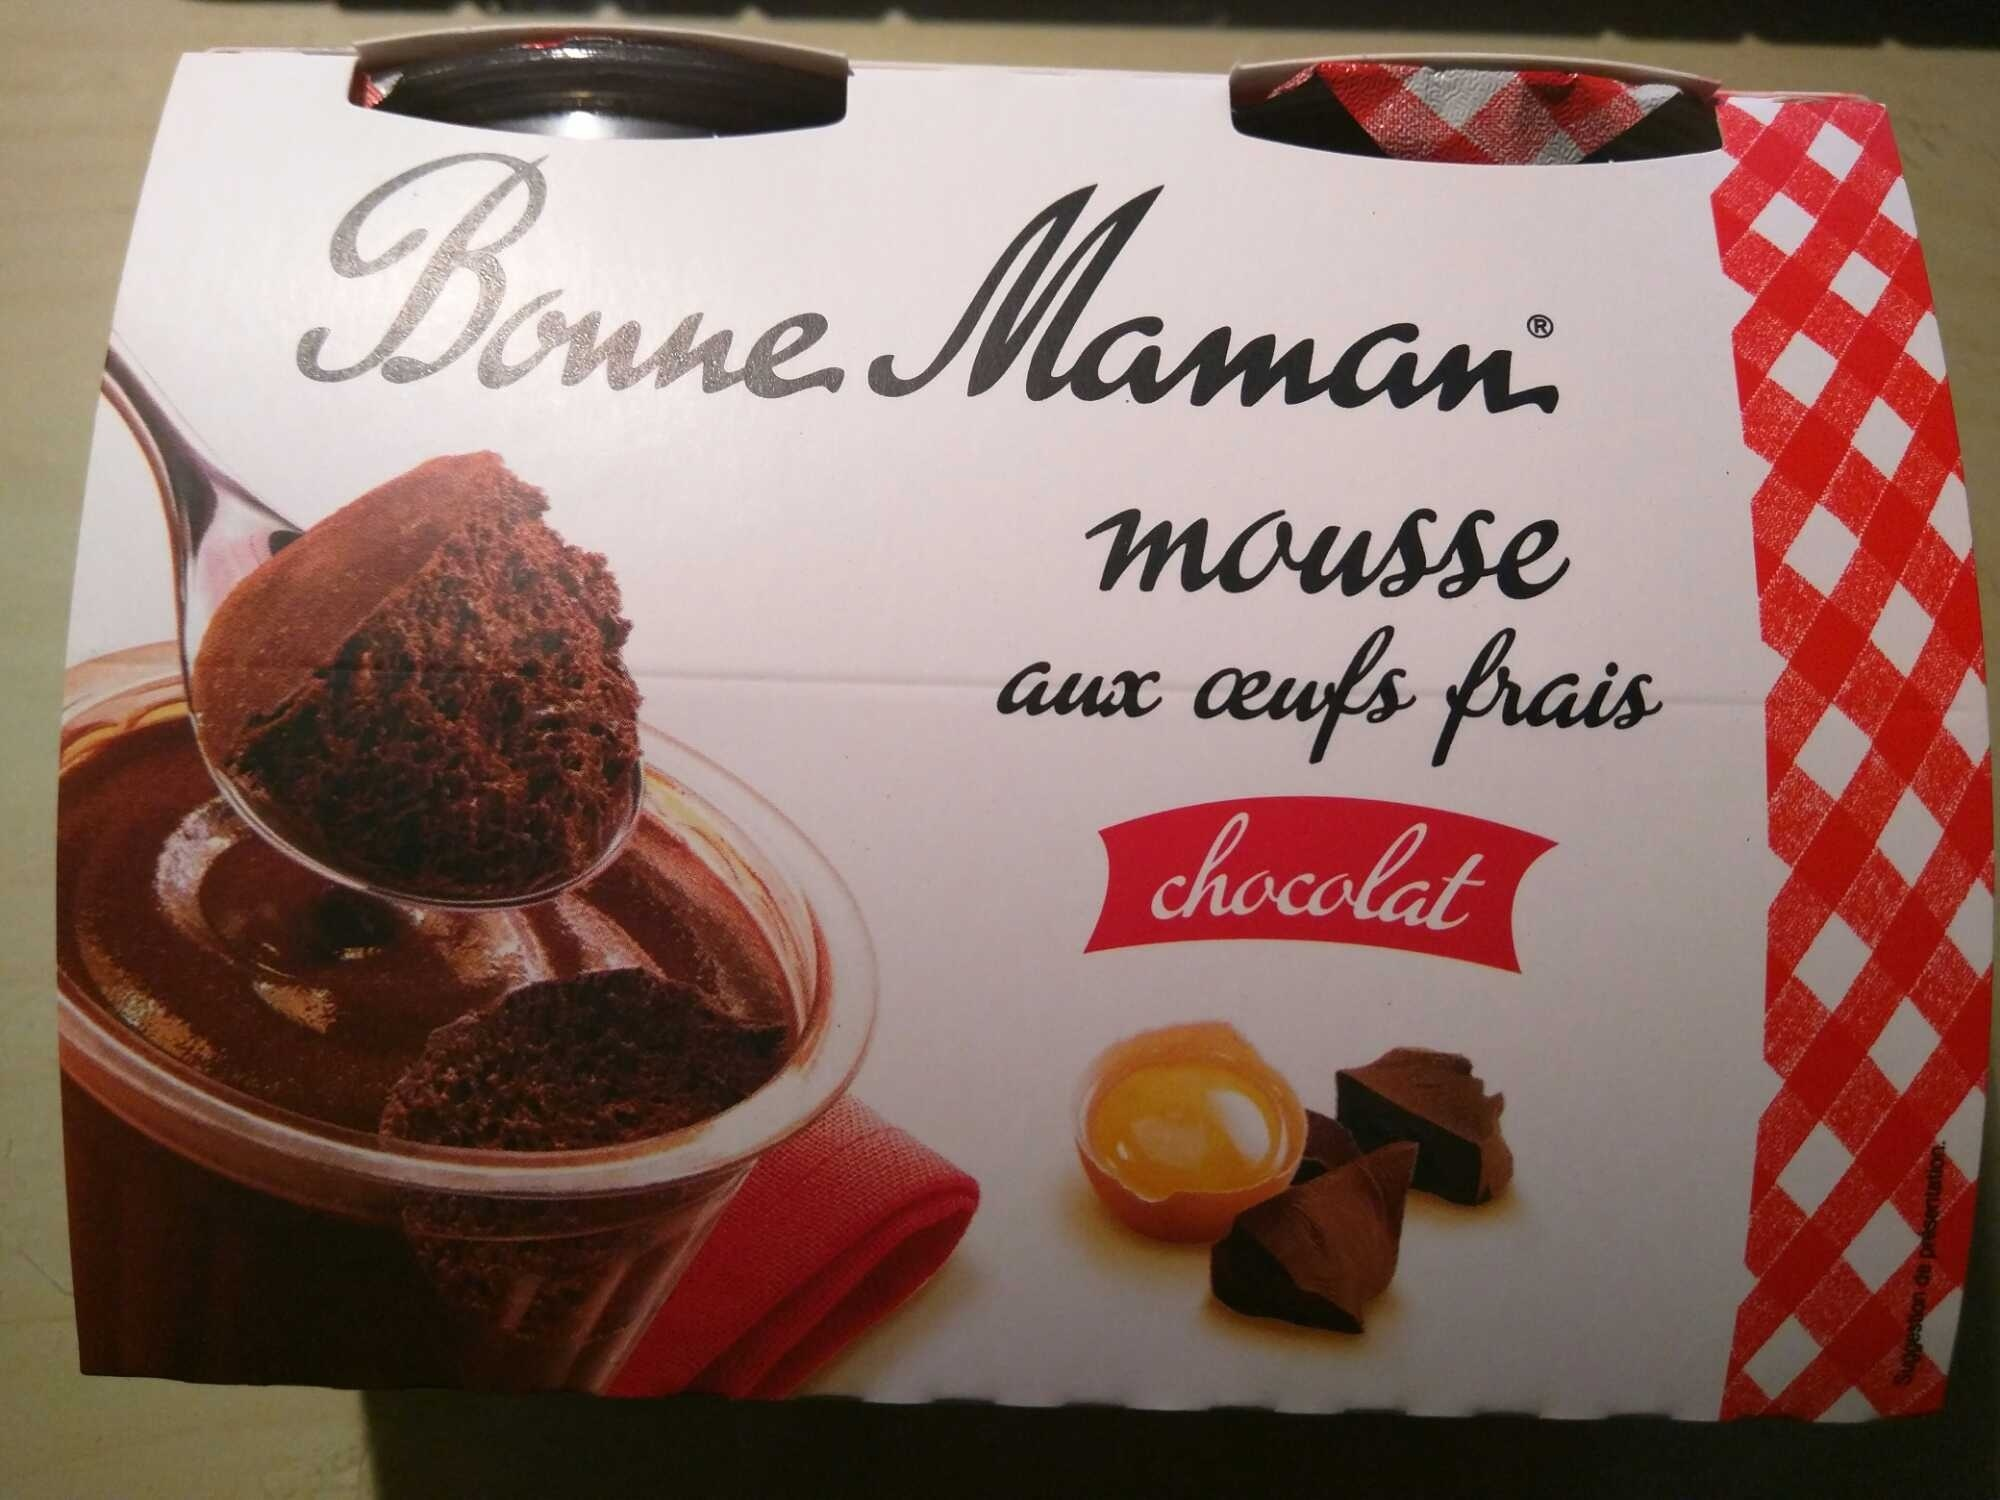 mousse aux oeufs frais chocolat bonne maman 200 g 4 x. Black Bedroom Furniture Sets. Home Design Ideas